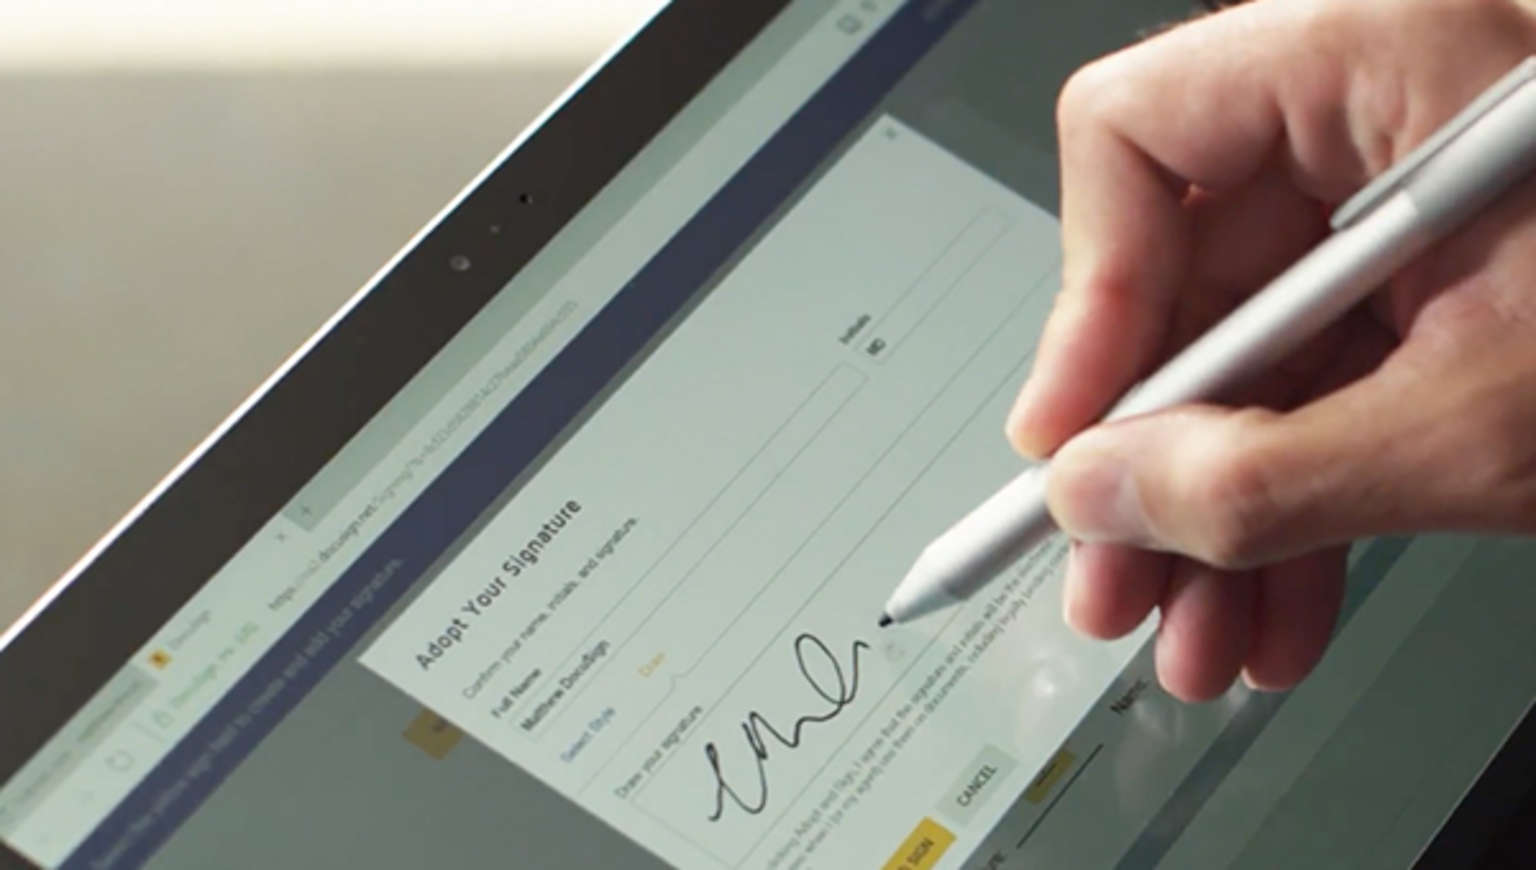 Learn how Praecipio Consulting integrates DocuSign into its own API products